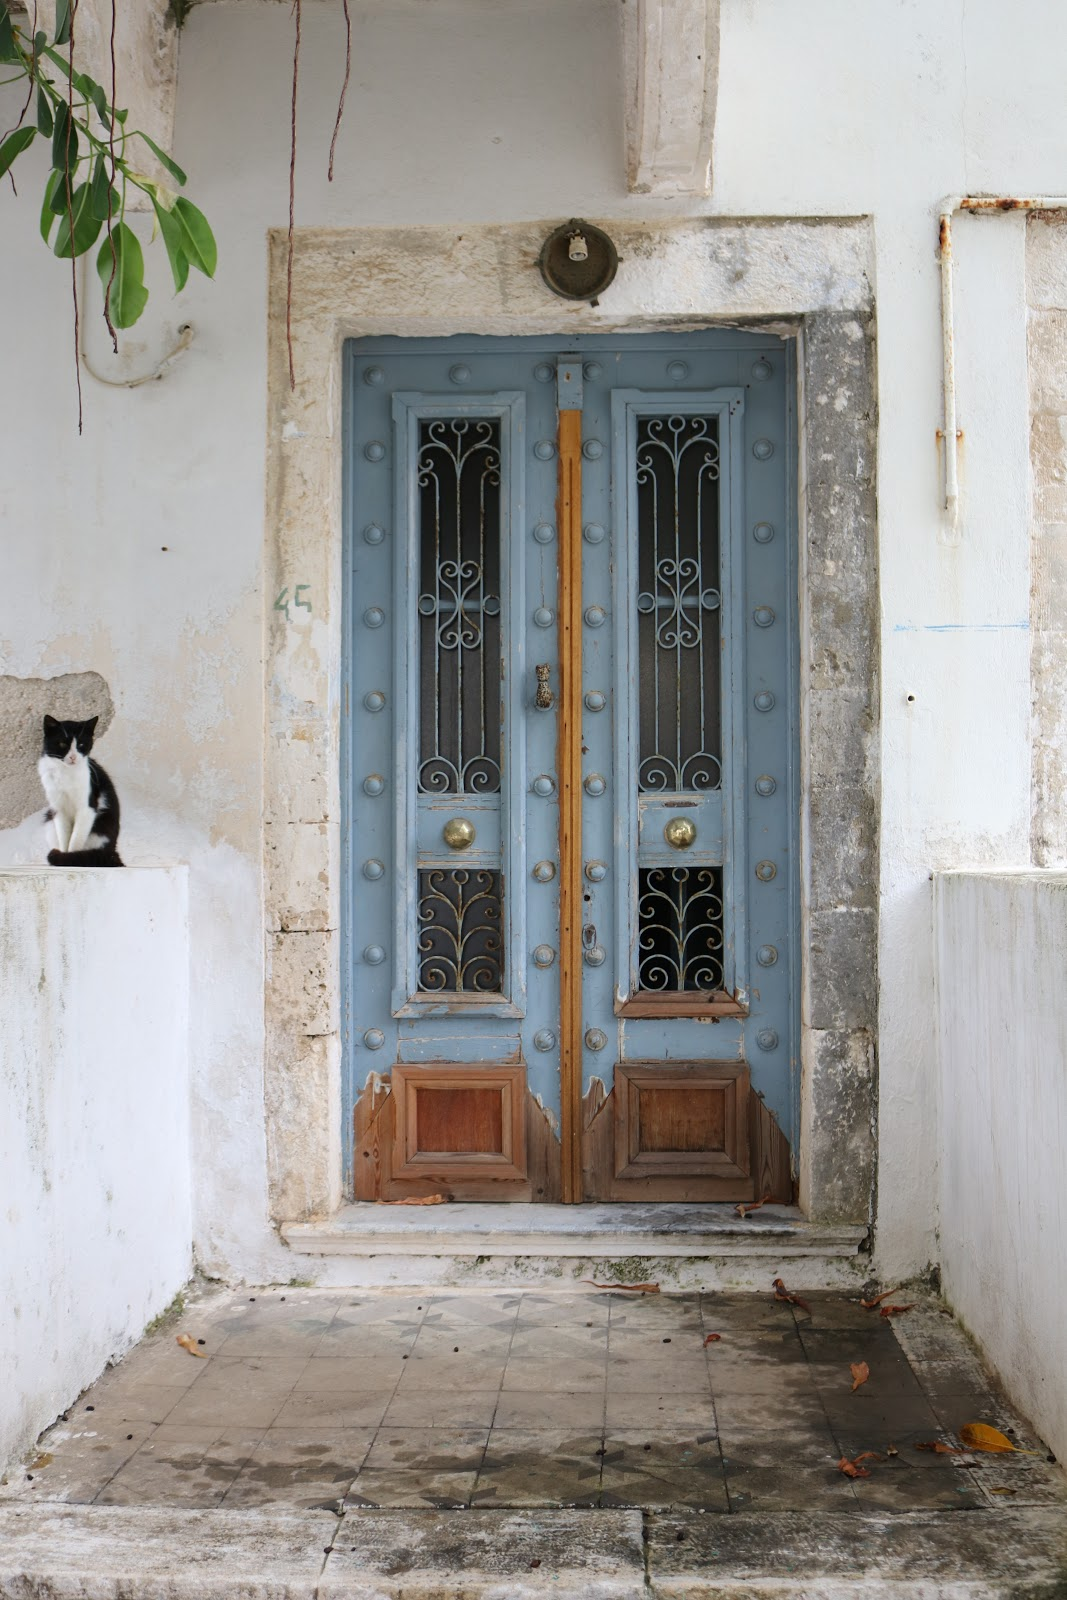 Cat sitting next to blue door with white walls, Kefalonia